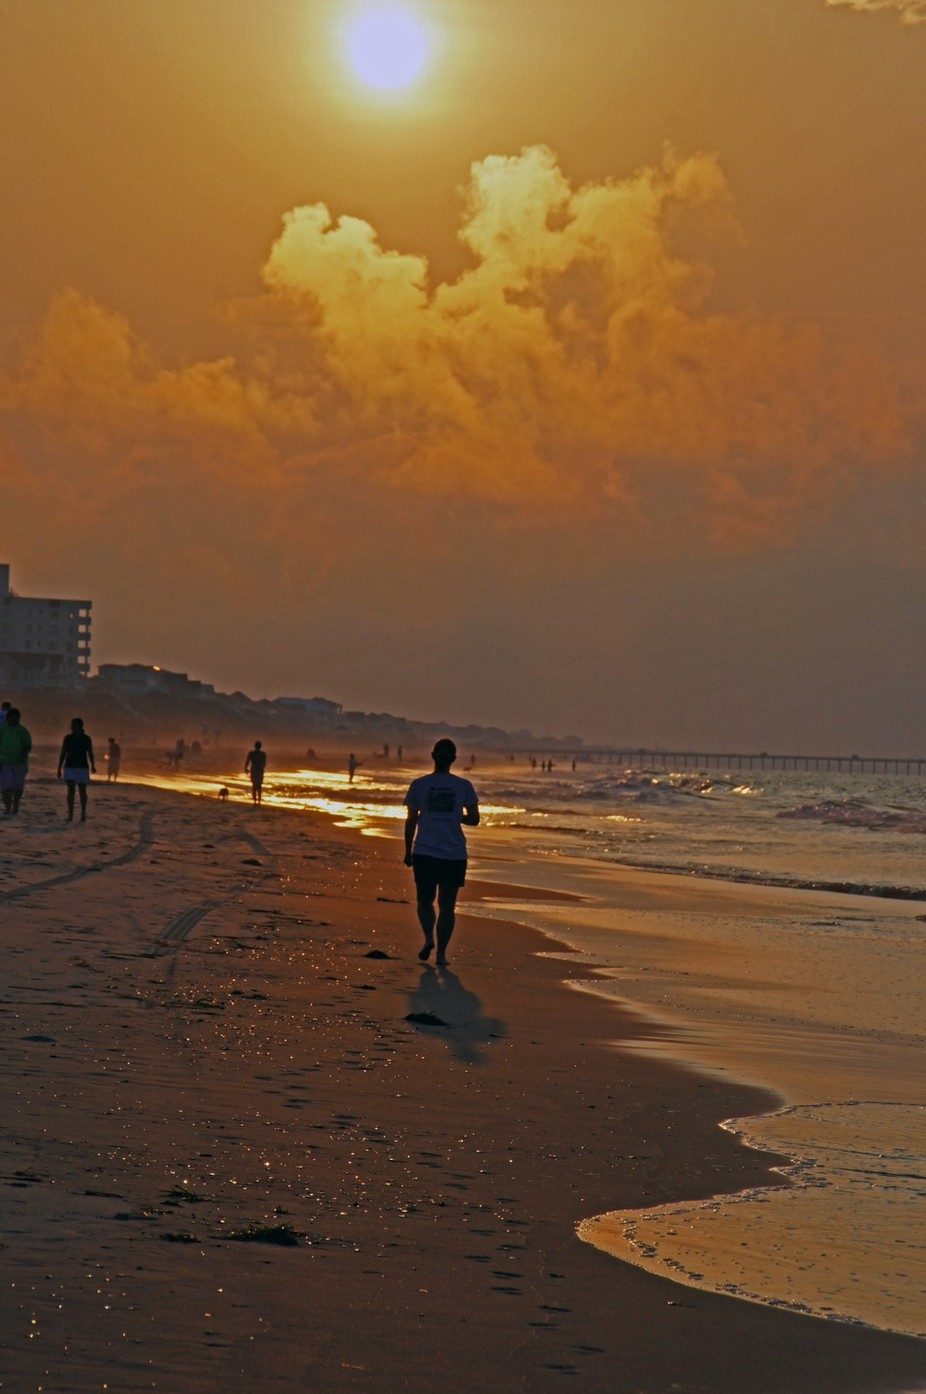 A copper sky in the early morning illuminates people walking on the beach.